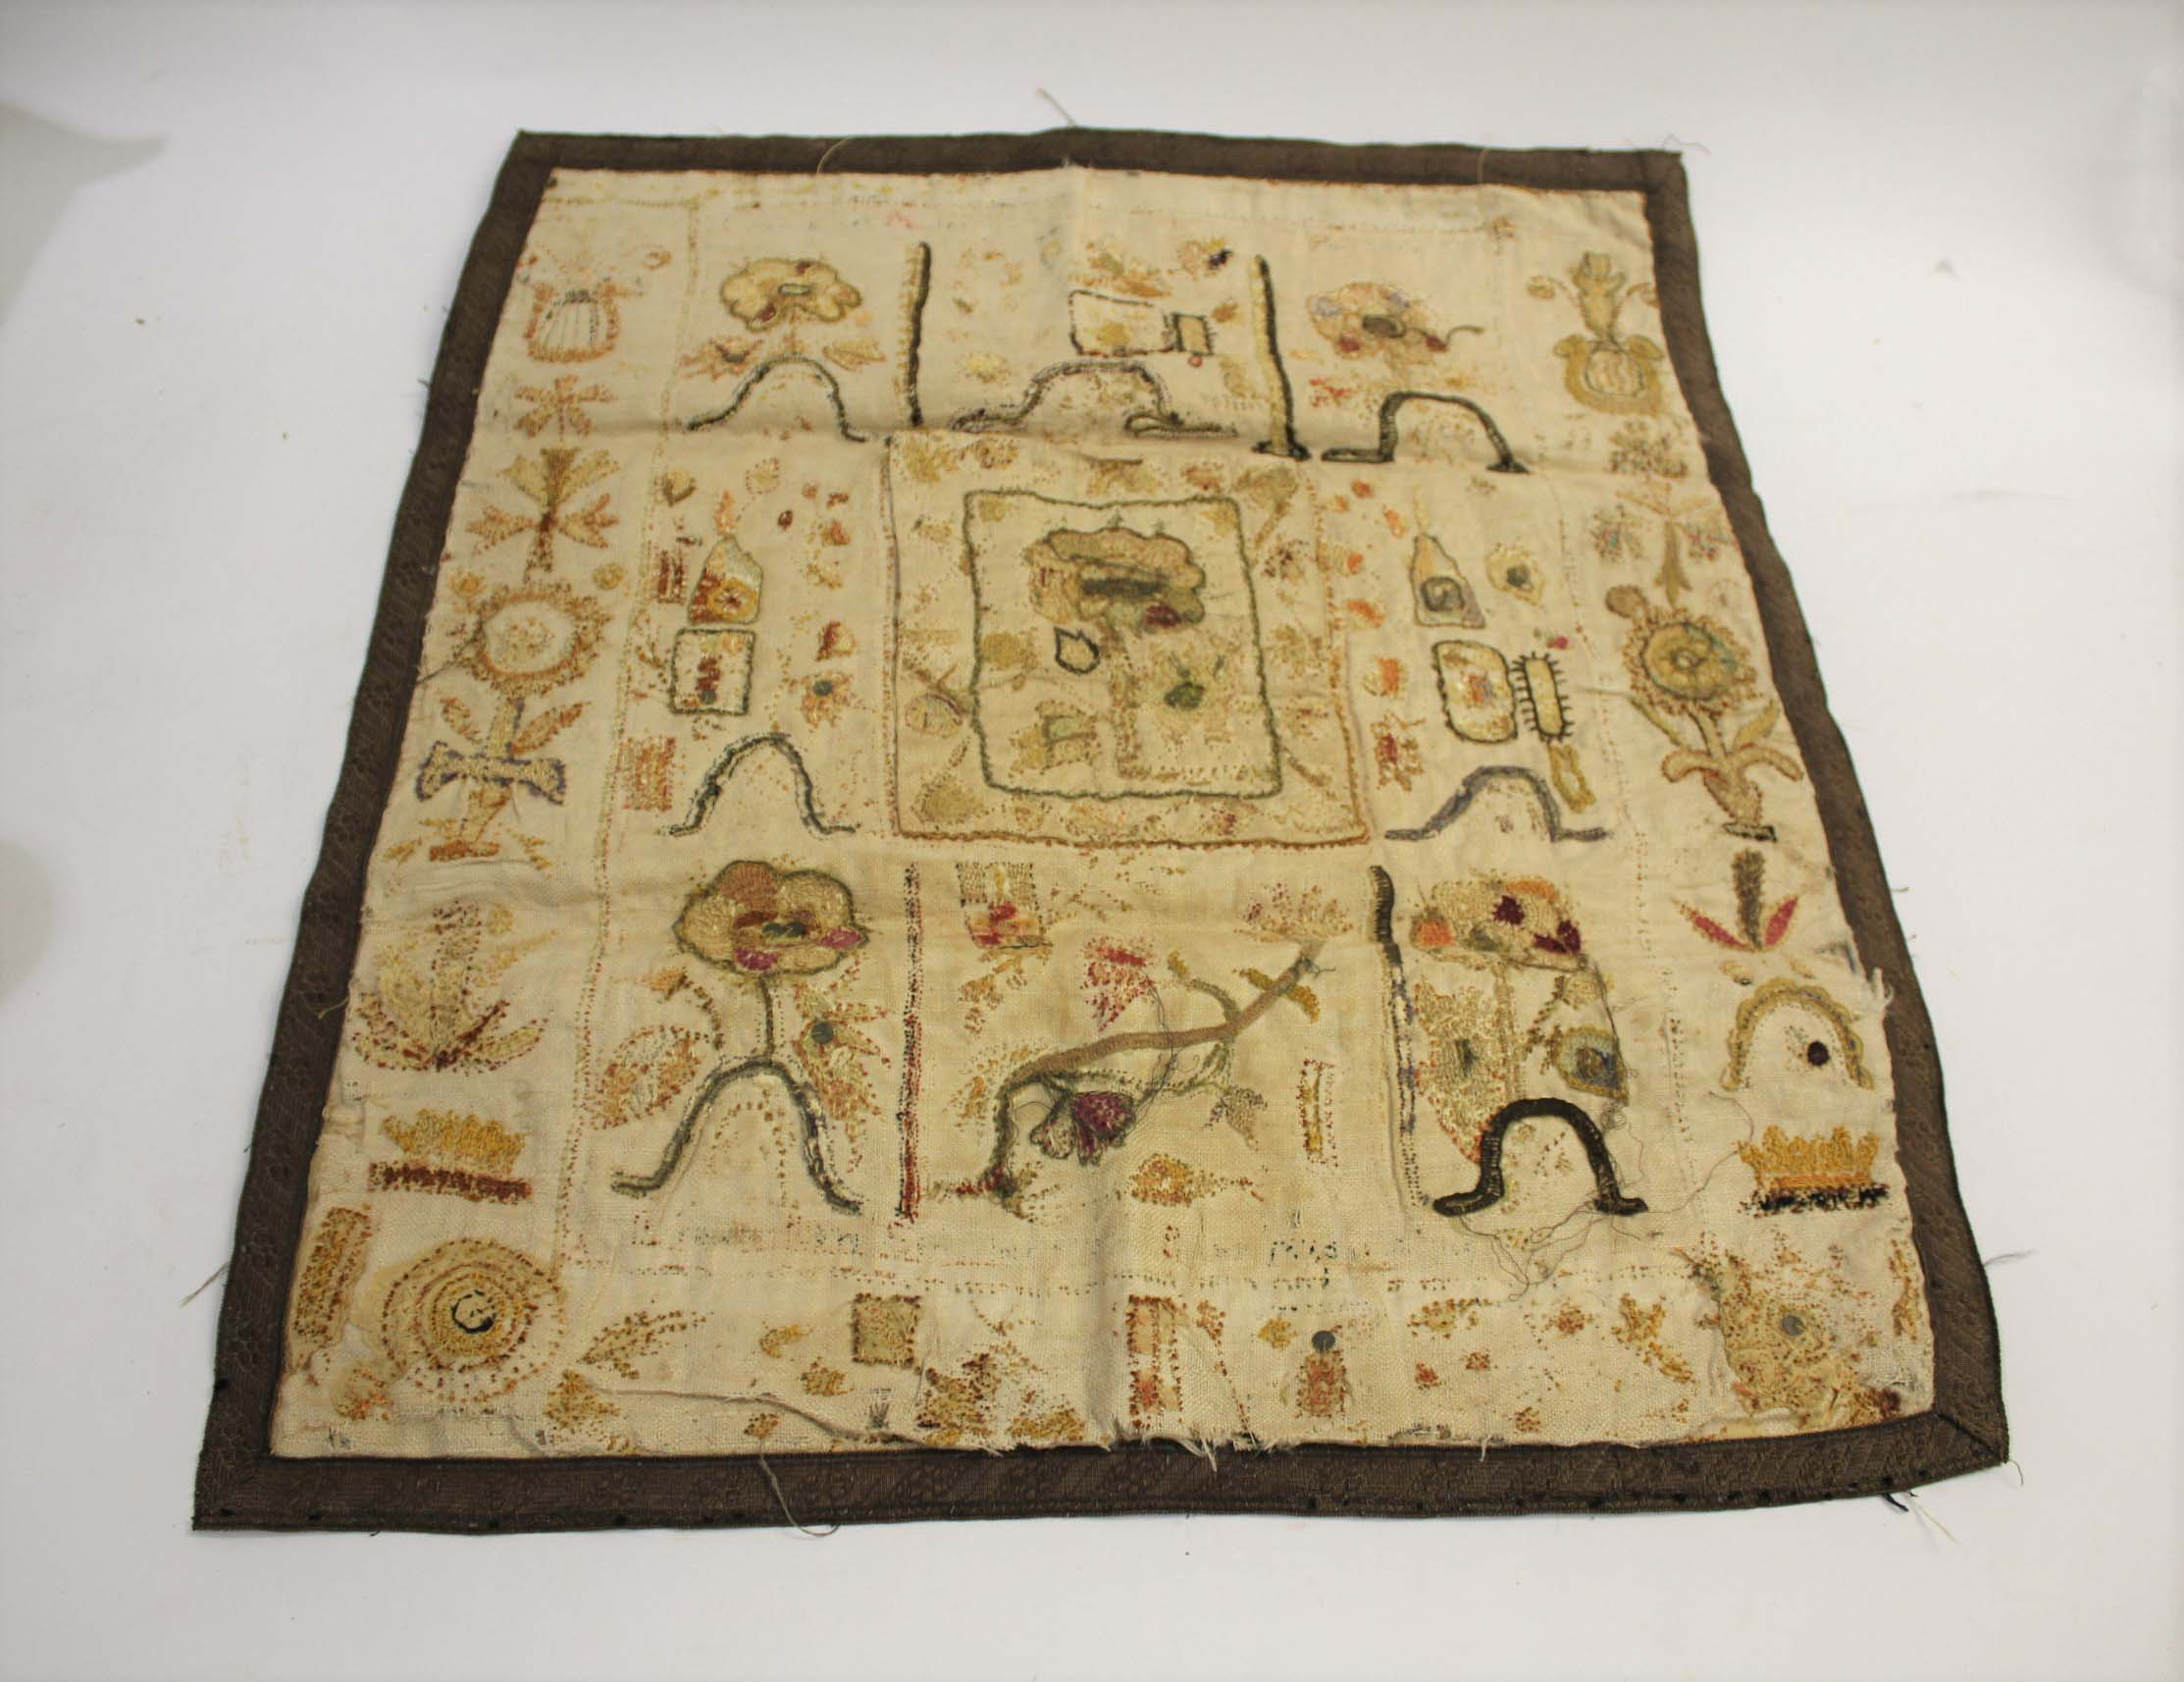 RARE 17THC SPOT SAMPLER a spot sampler onto linen with various flowers depicted, including a later